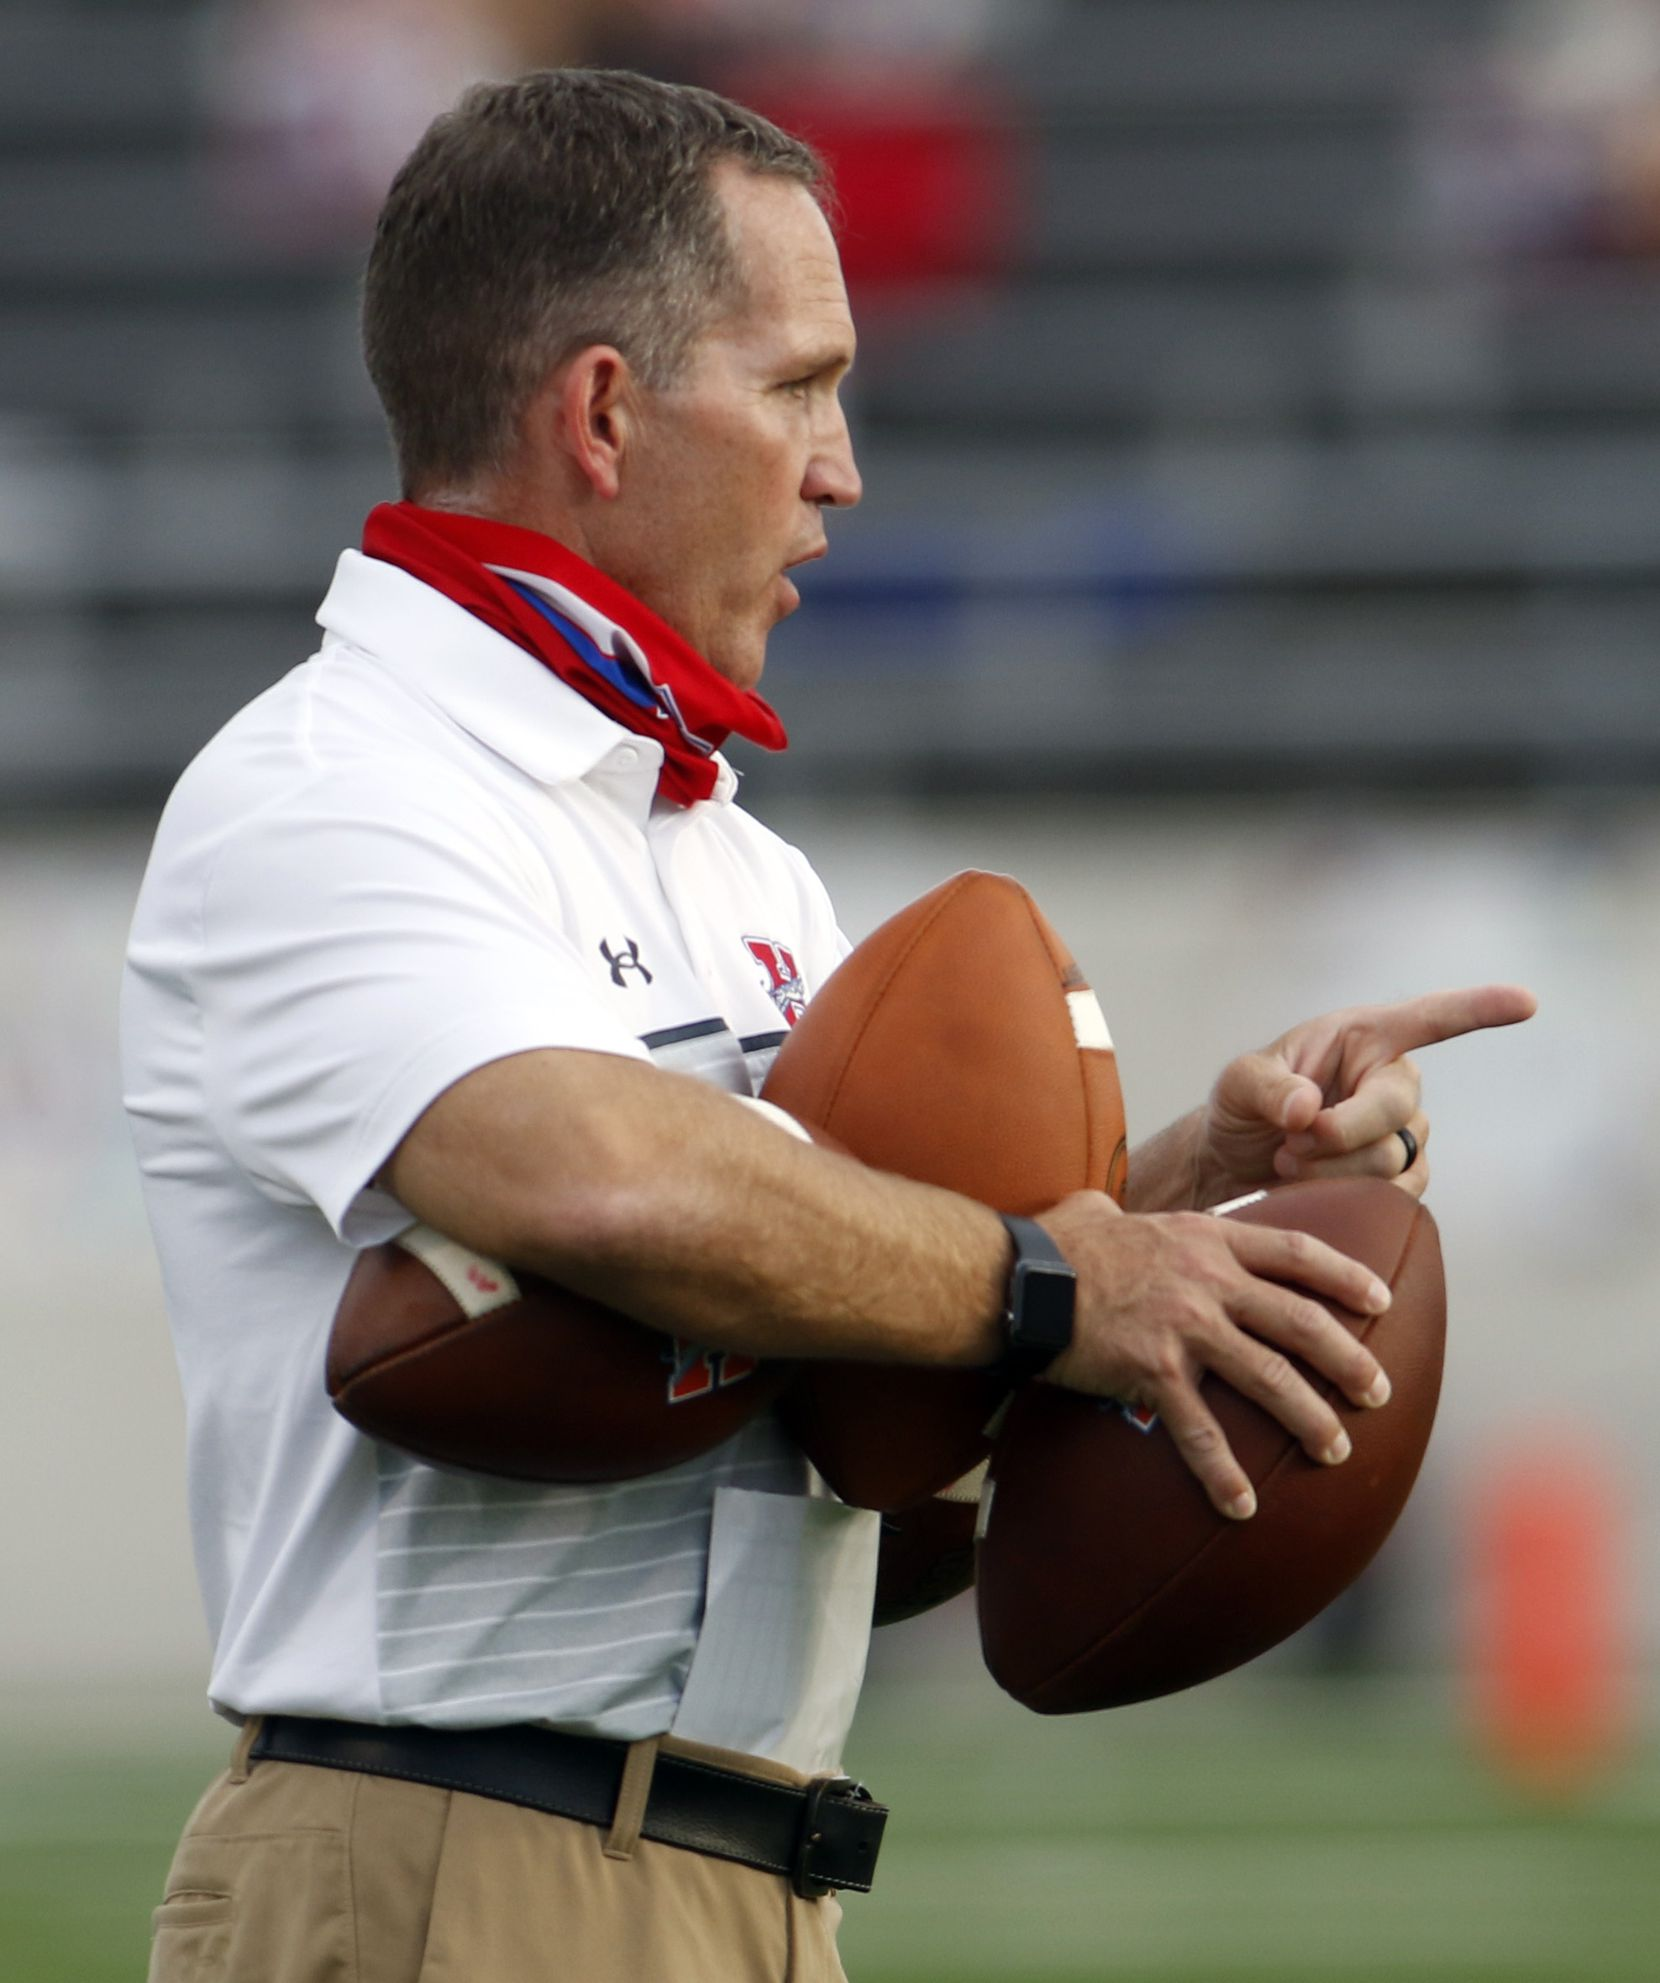 Midlothian Heritage head football coach Lee Wigginton makes a point while working with his players during team warm-ups prior to the opening kickoff of their game against Lindale. The two teams played their Class 4A football game at Midlothian ISD Multipurpose Stadium in Midlothian on September 4, 2020. (Steve Hamm/ Special Contributor)